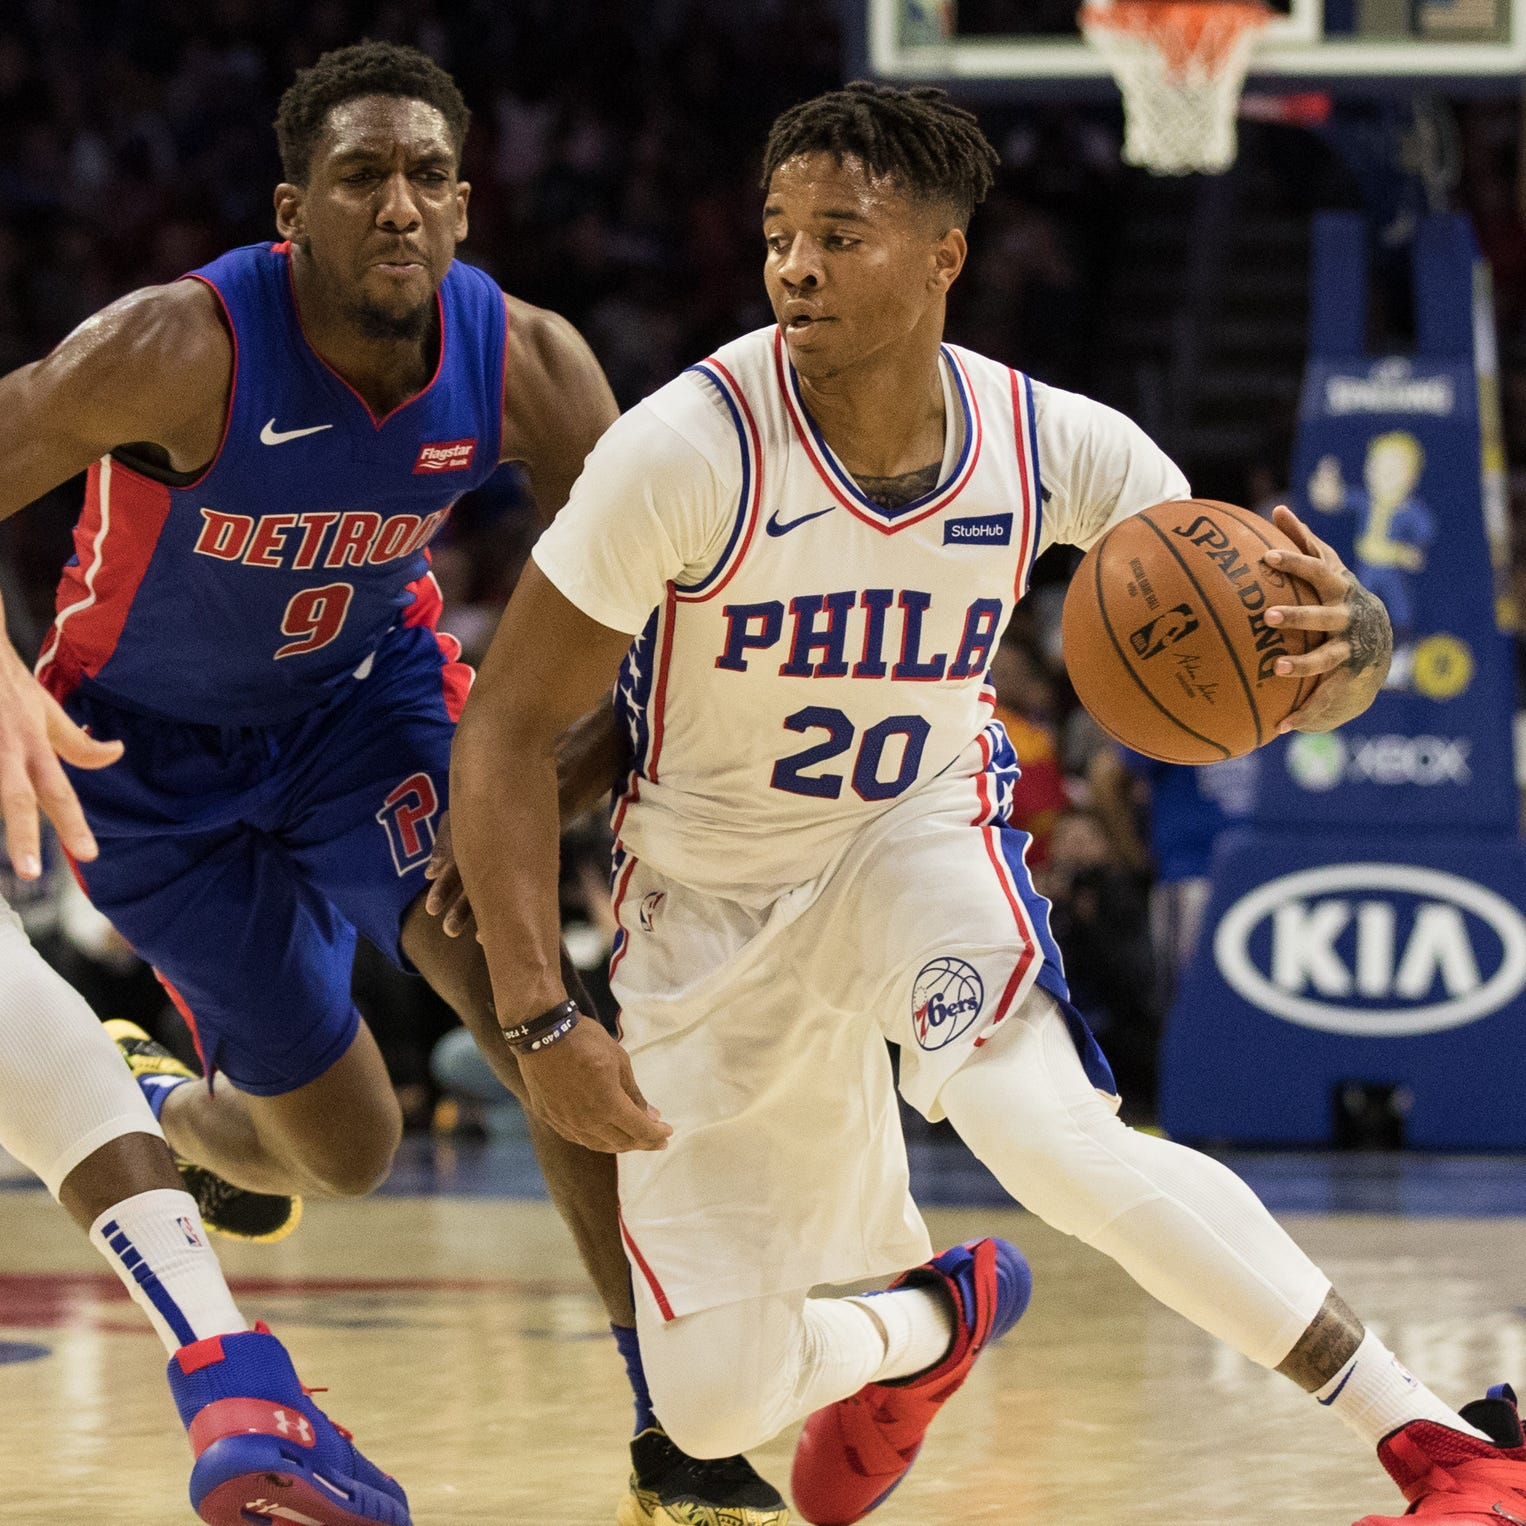 Detroit Pistons have interest in trading for 76ers' Markelle Fultz